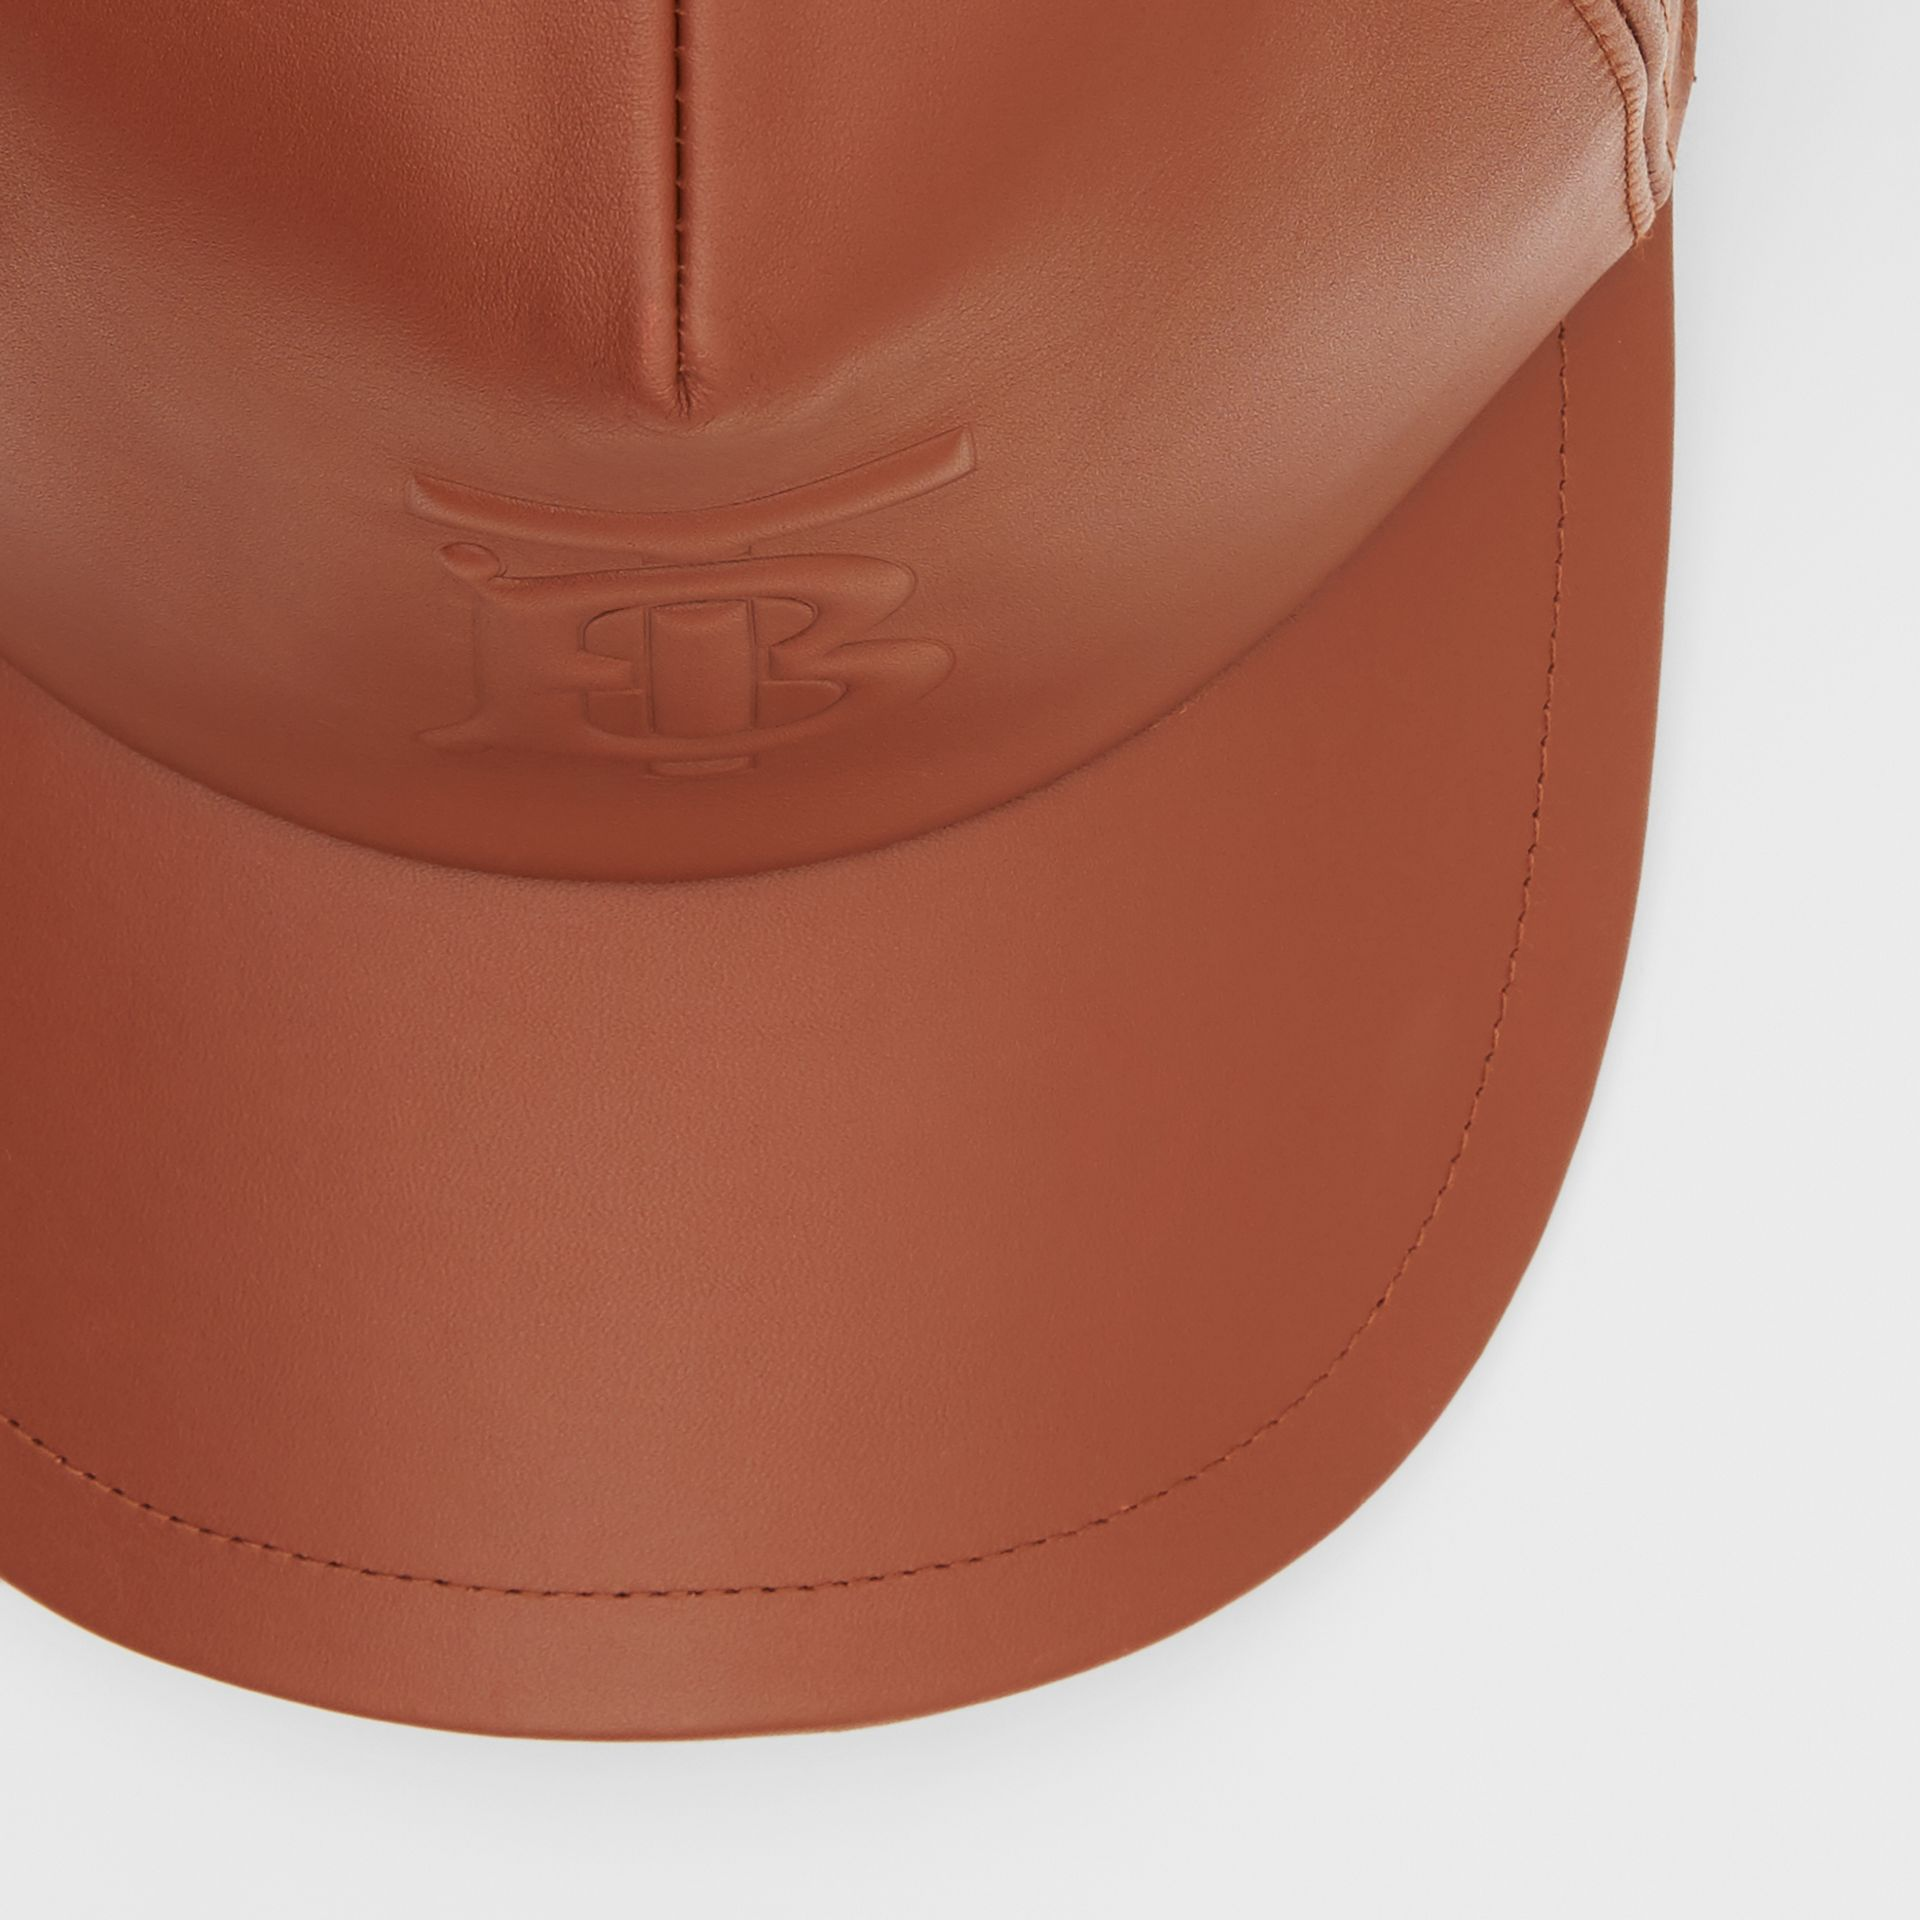 Monogram Motif Leather Baseball Cap in Tan | Burberry Singapore - gallery image 1